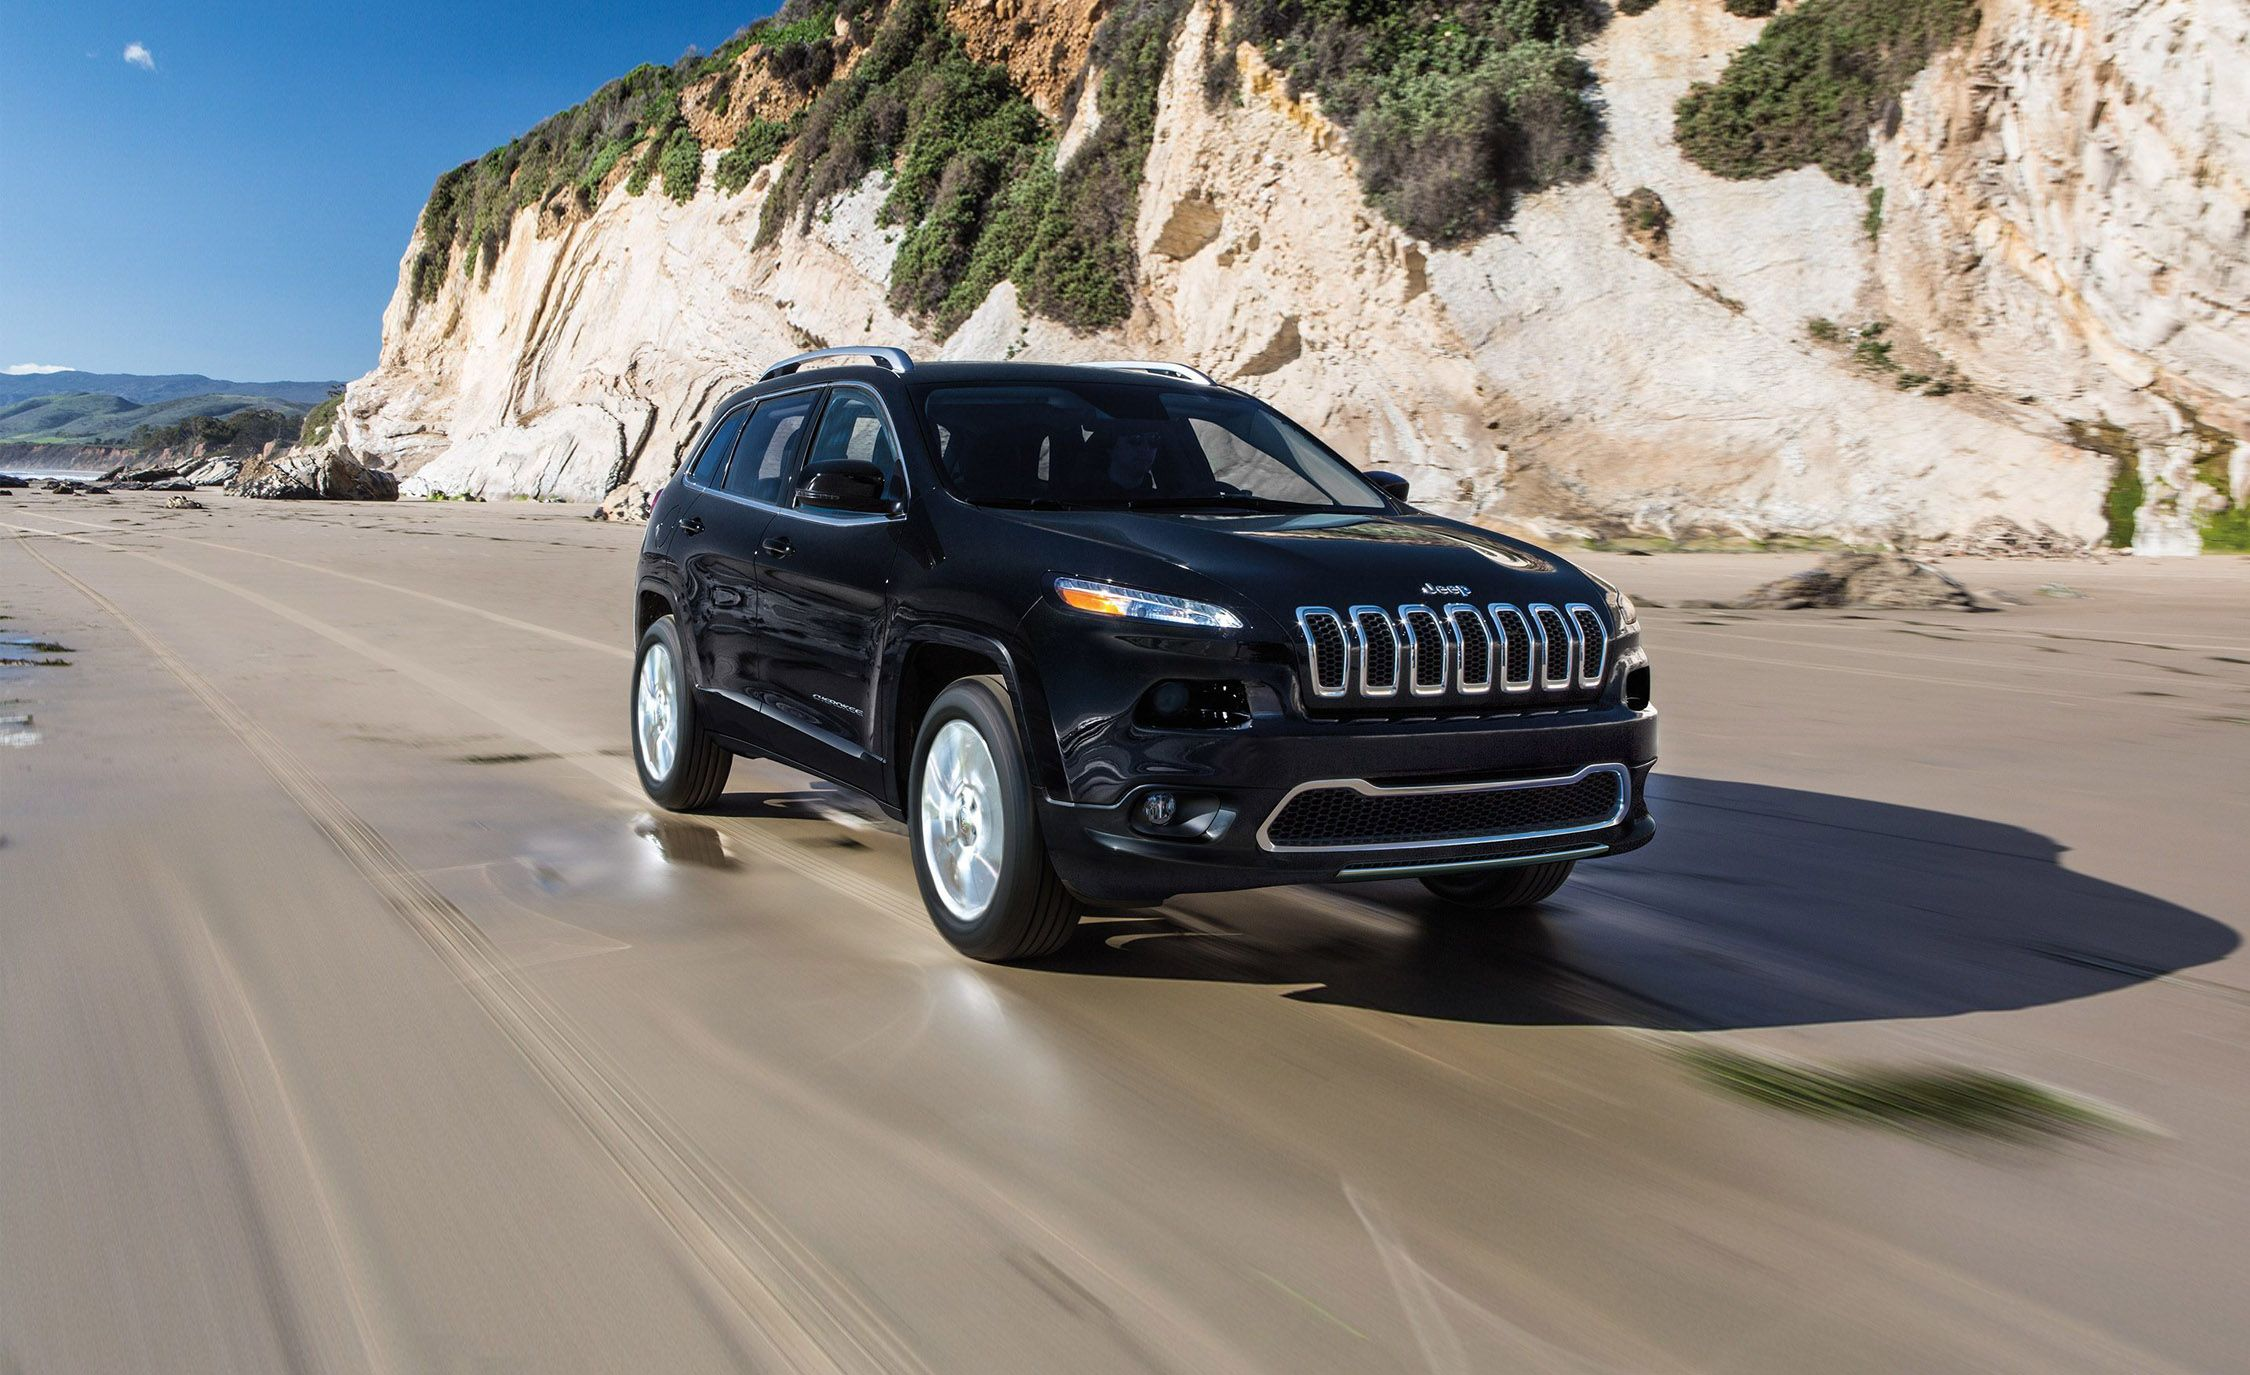 Jeep Altitude For Sale >> 2018 Jeep Cherokee   In-Depth Model Review   Car and Driver